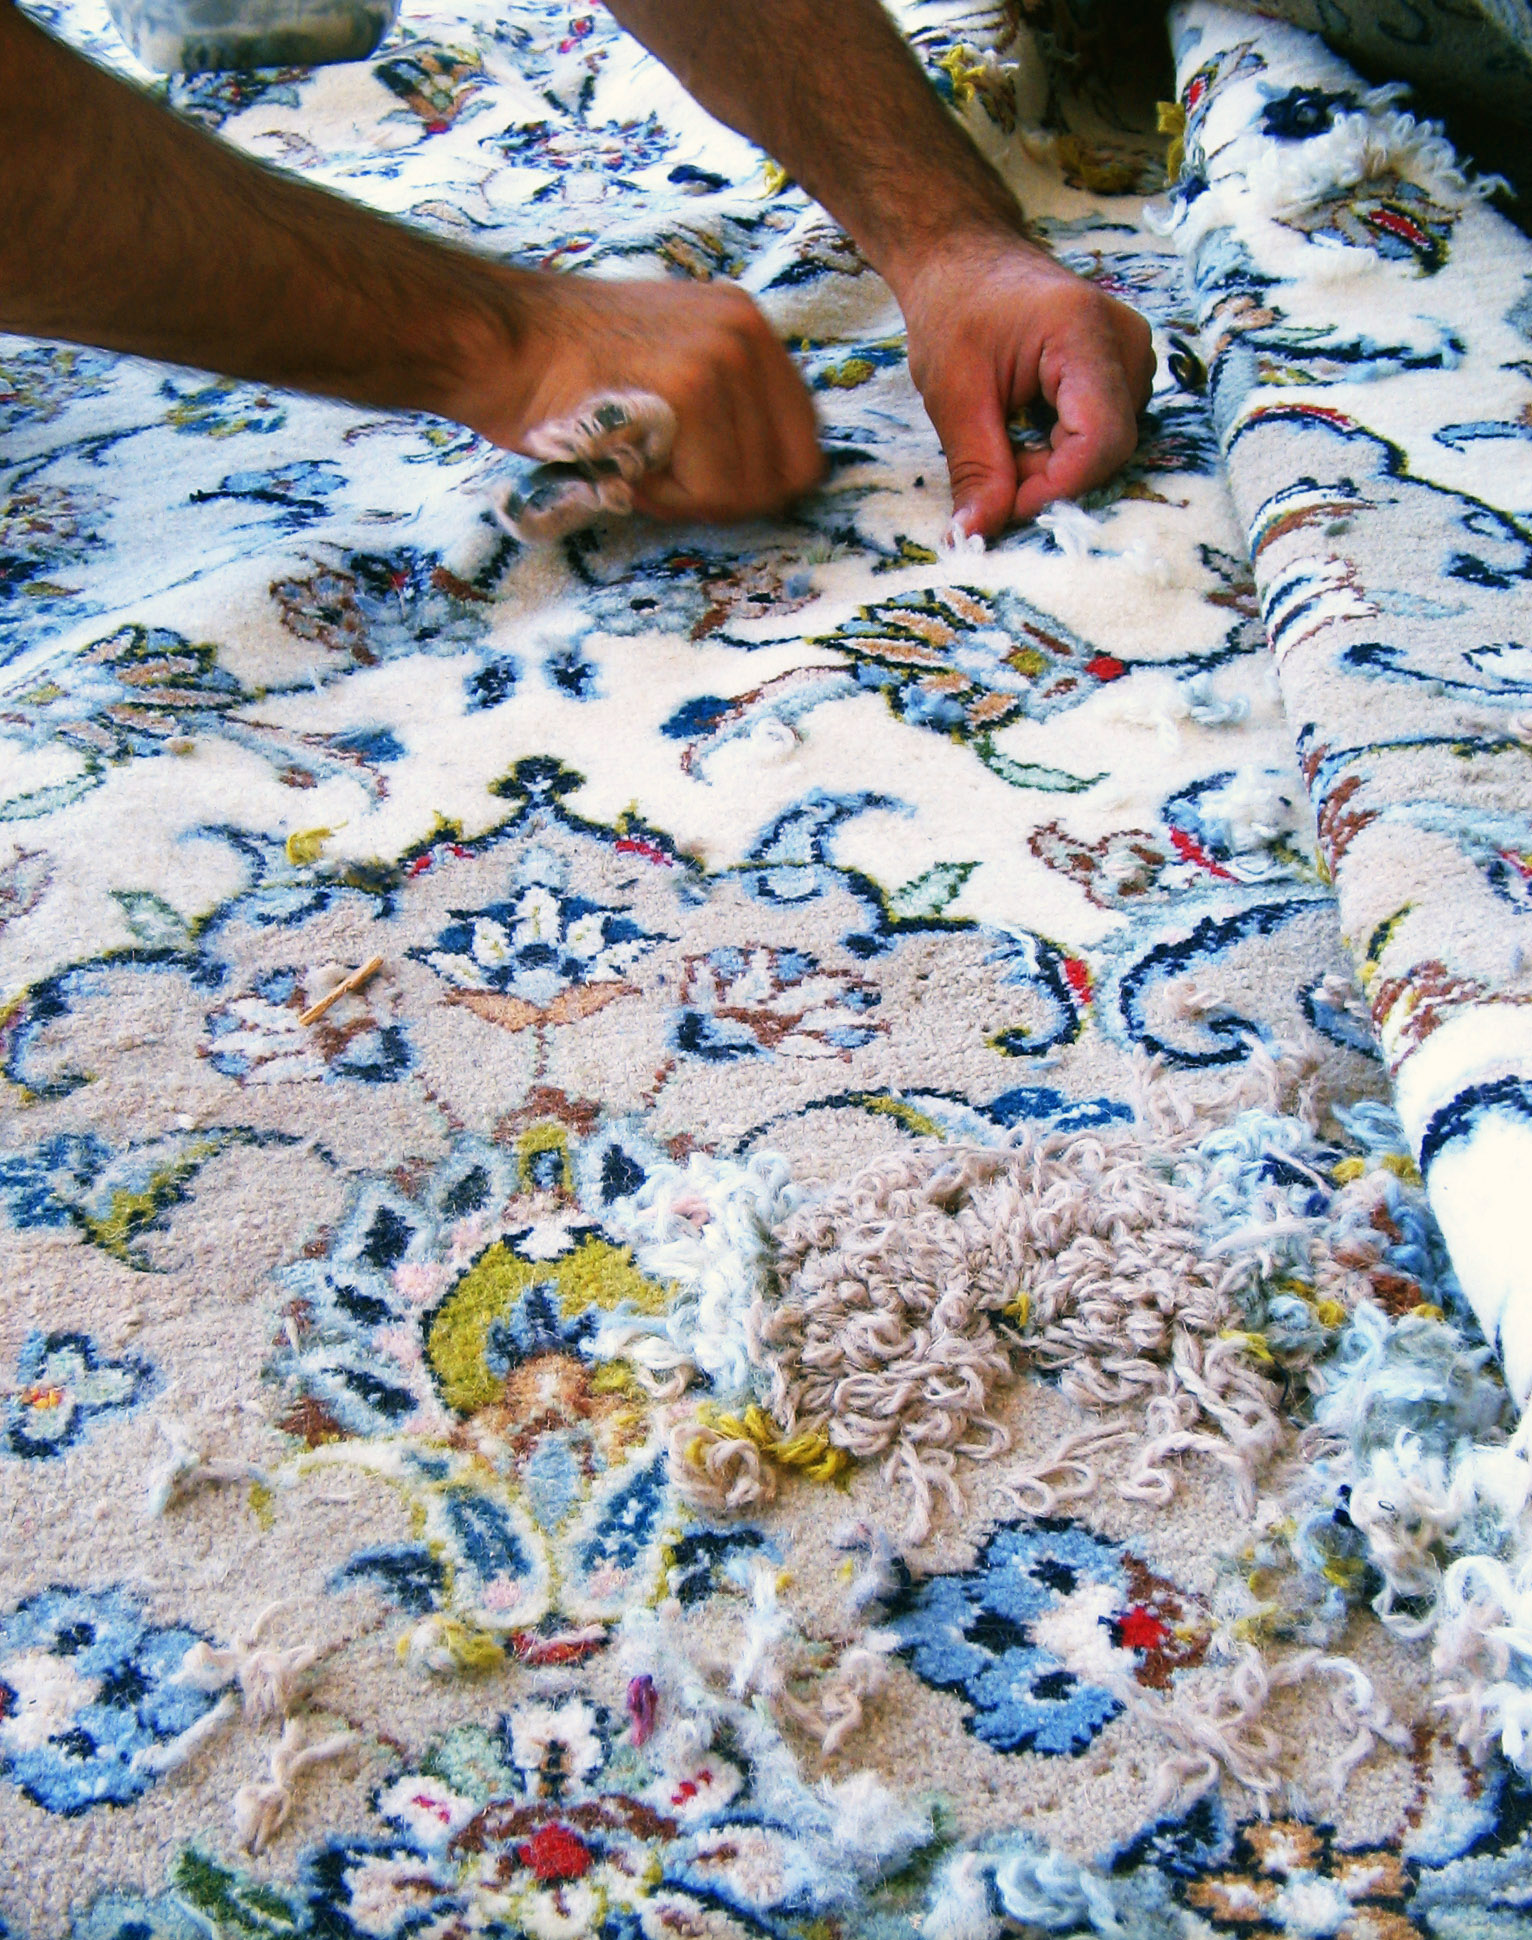 carpet weaving essay We take a look at how turkish carpets are made photo essay – how turkish carpets are made the women set to work weaving the wool in and out.